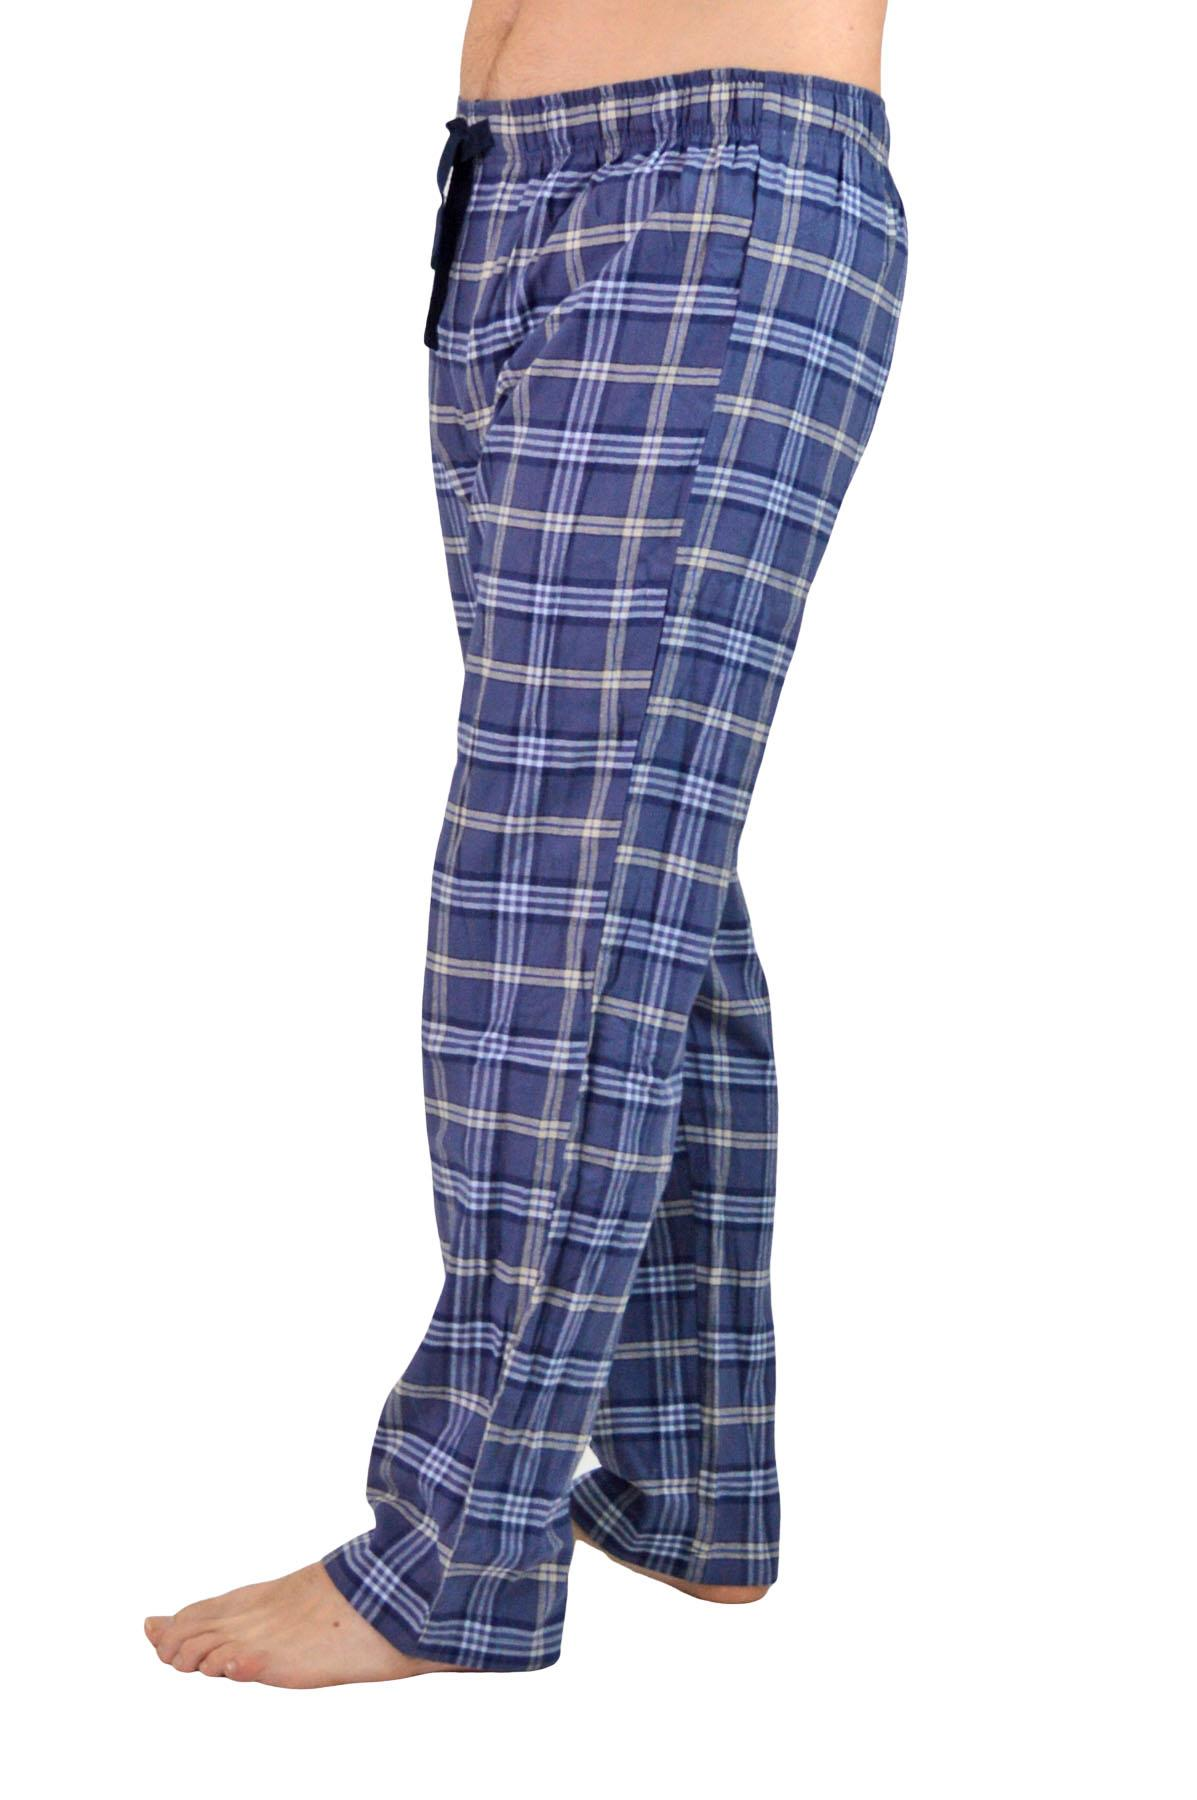 NEW-Mens-Brushed-Pure-Cotton-Check-Pyjamas-Flannelette-PJ-Set-in-Blue-Red-Grey thumbnail 3